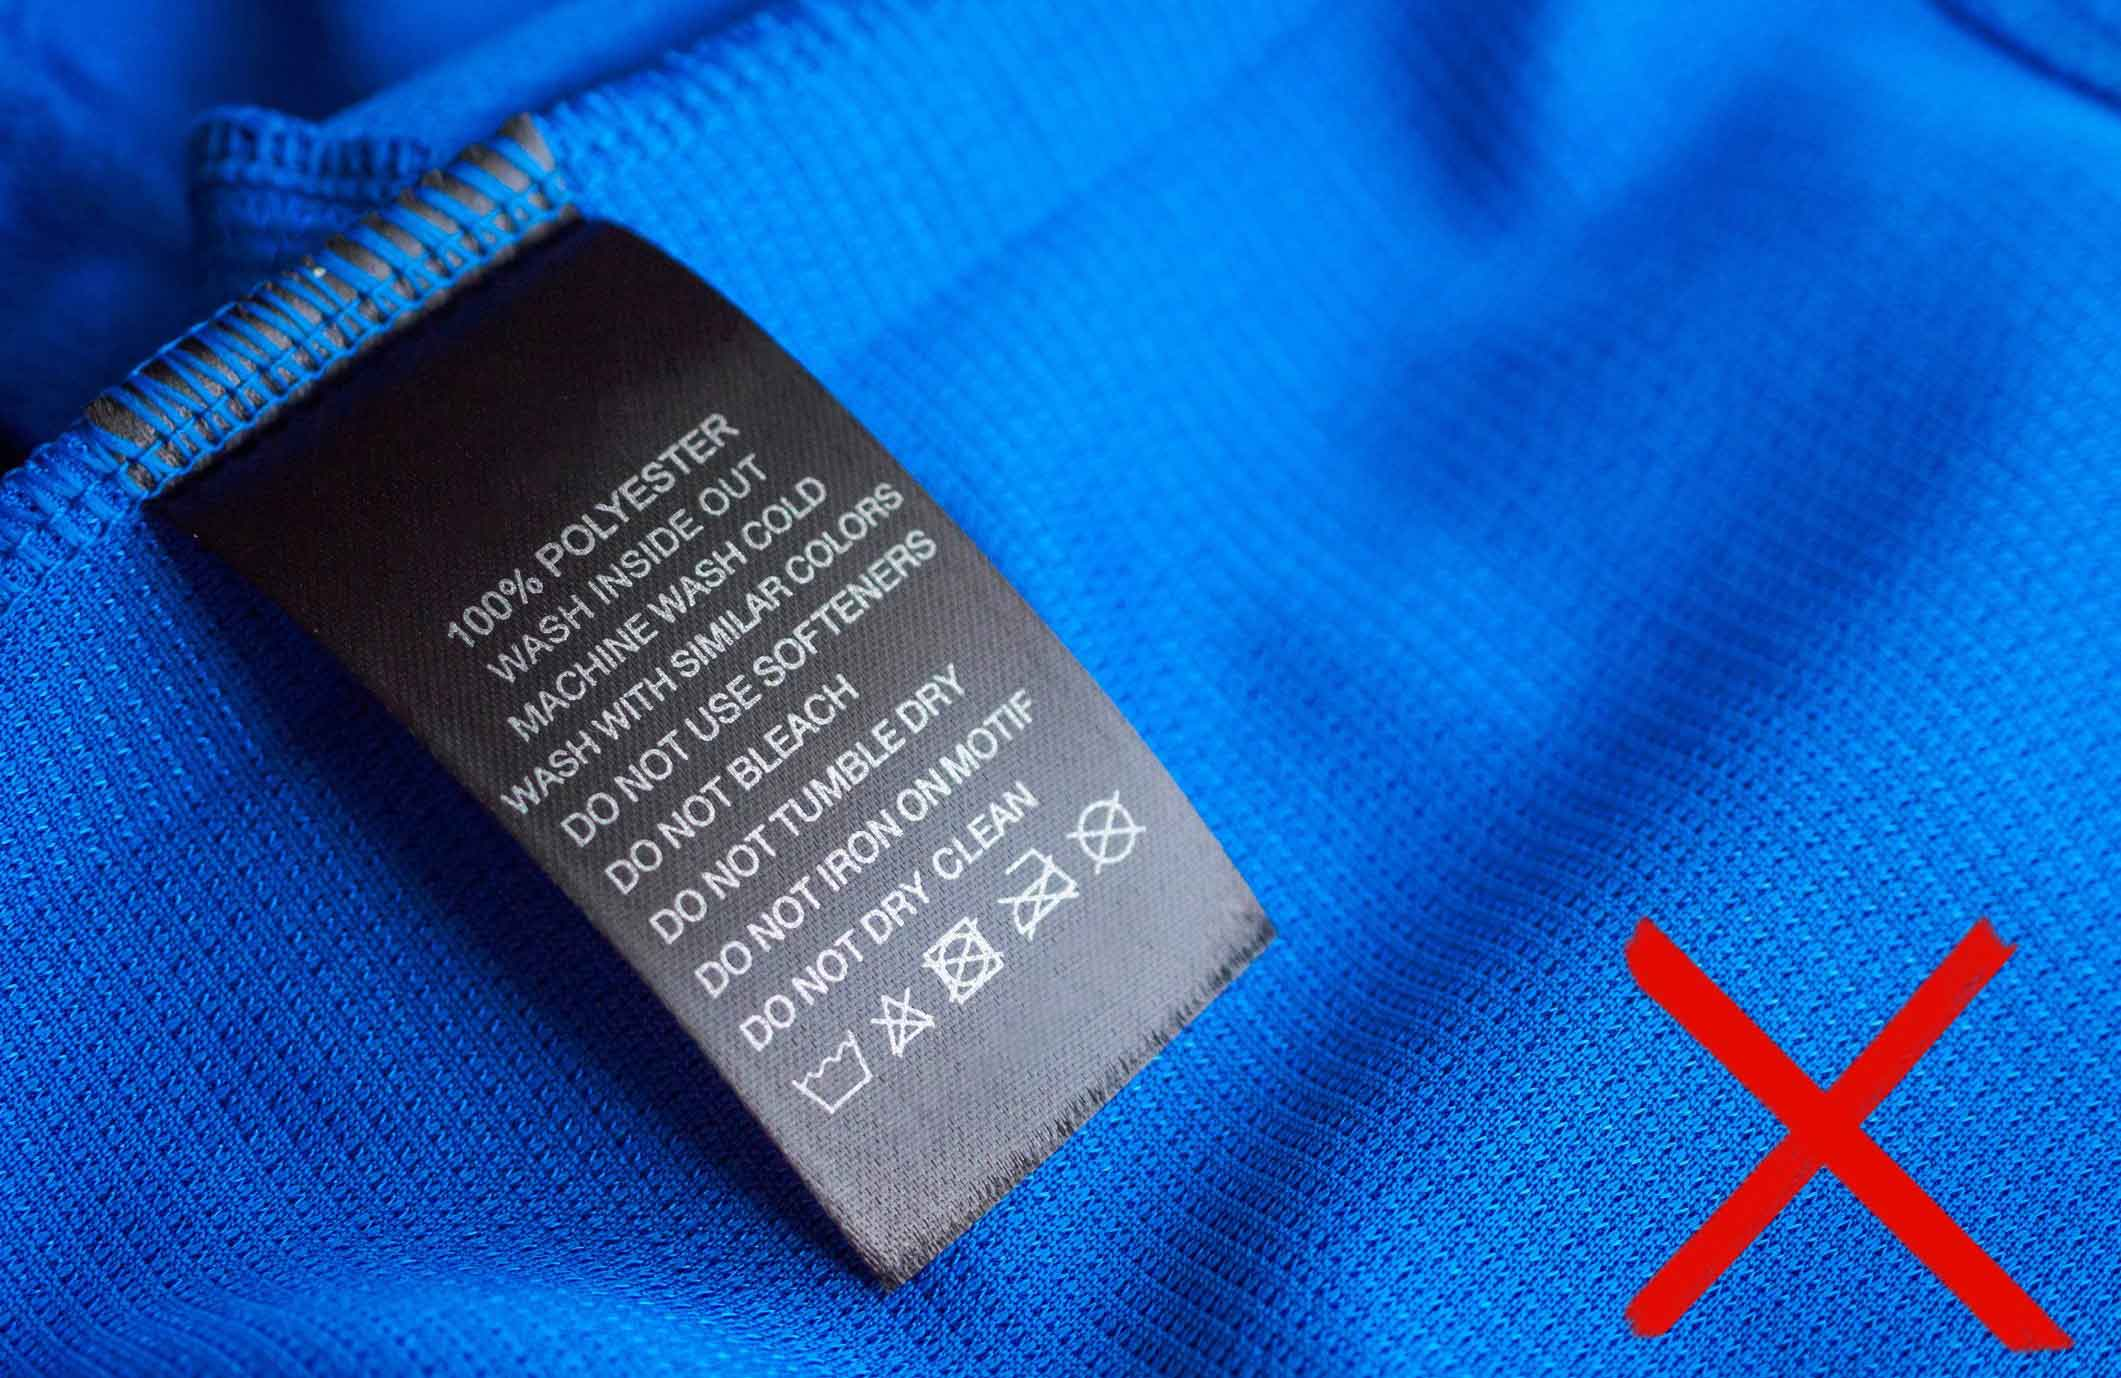 You can ignore the fabric care label